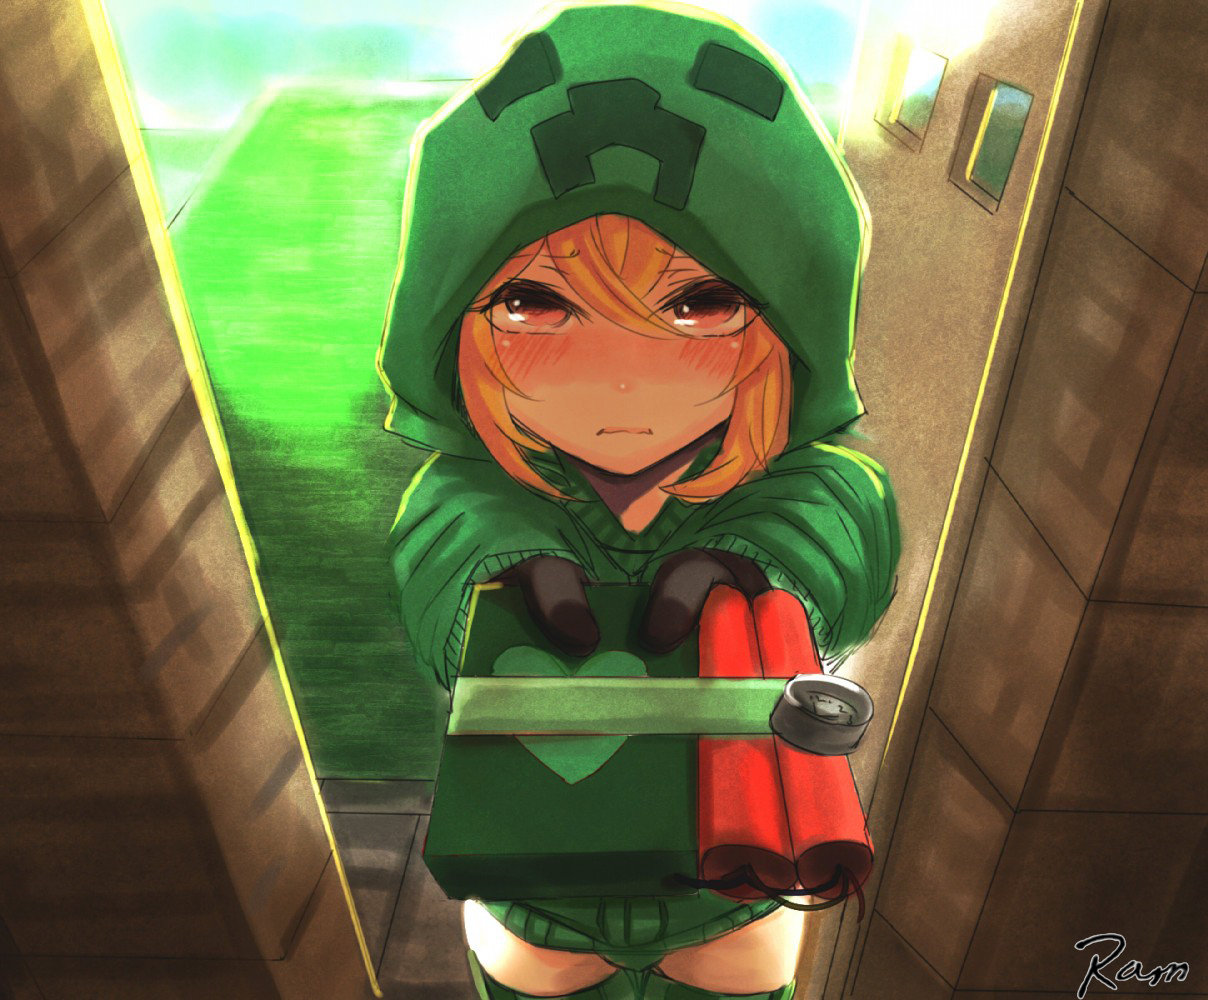 Minecraft creeper with a present d by rammkiler on deviantart - Creeper anime girl ...